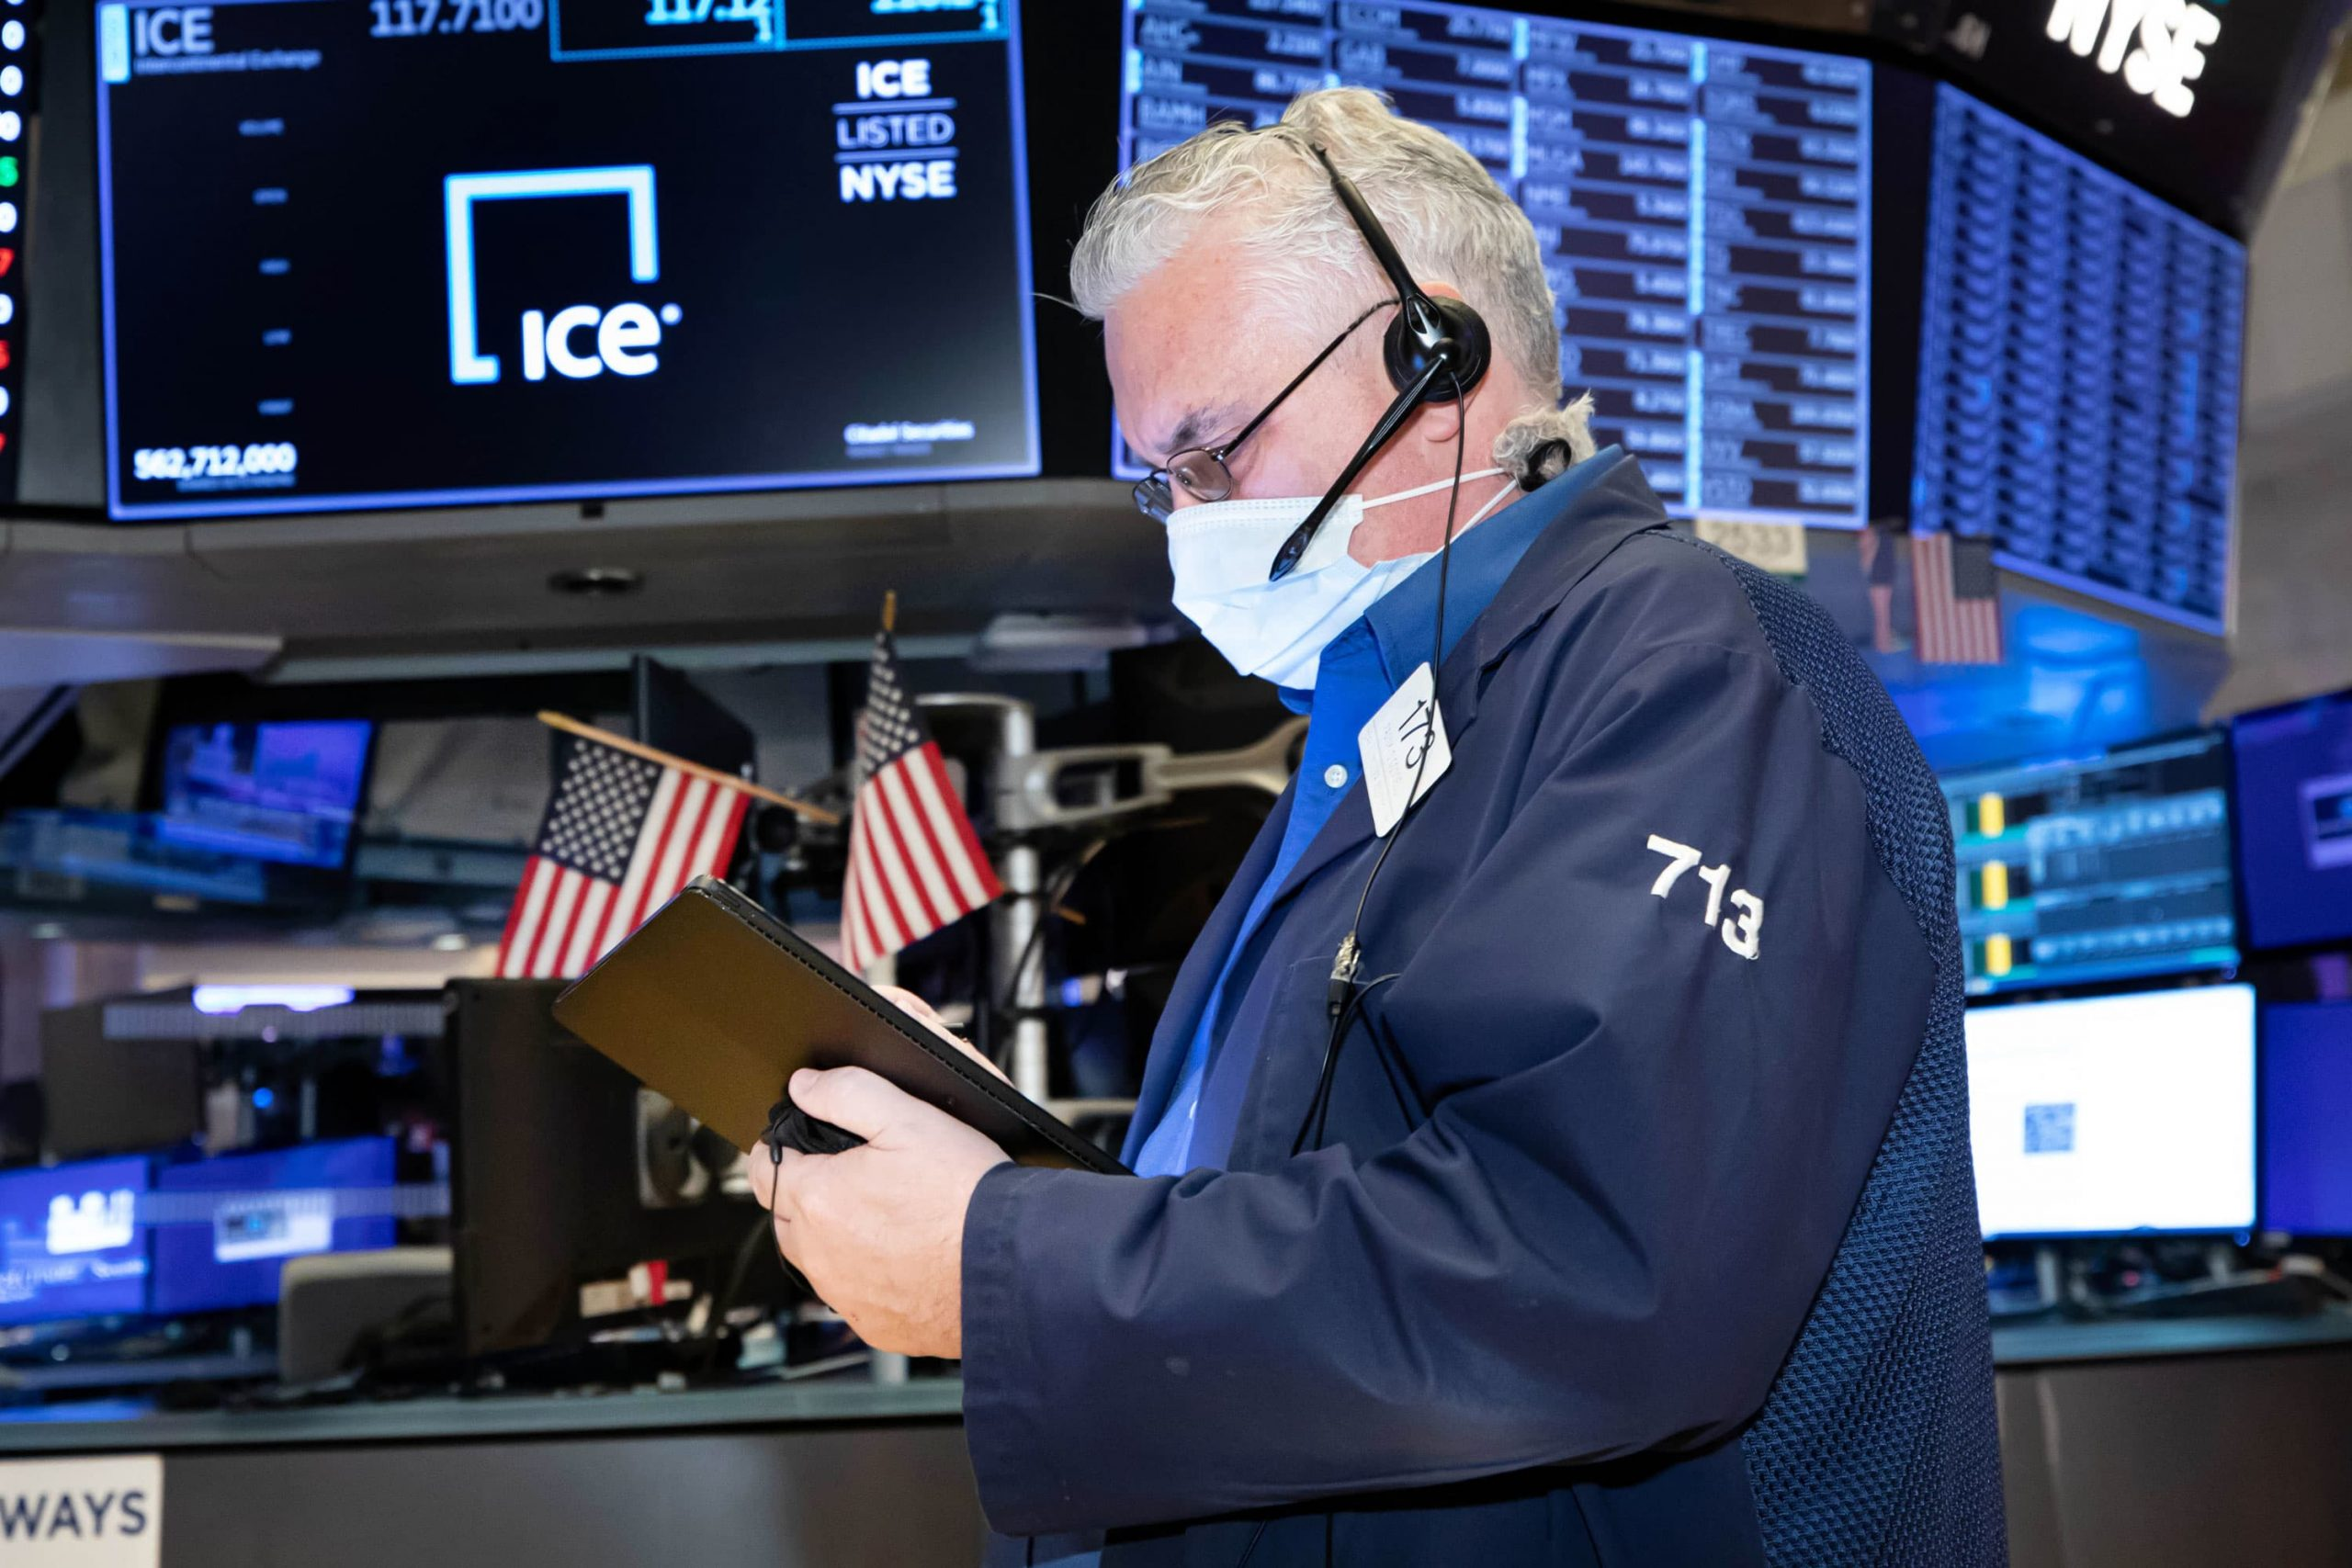 S&P 500 futures fall slightly in overnight trading, Netflix shares tank